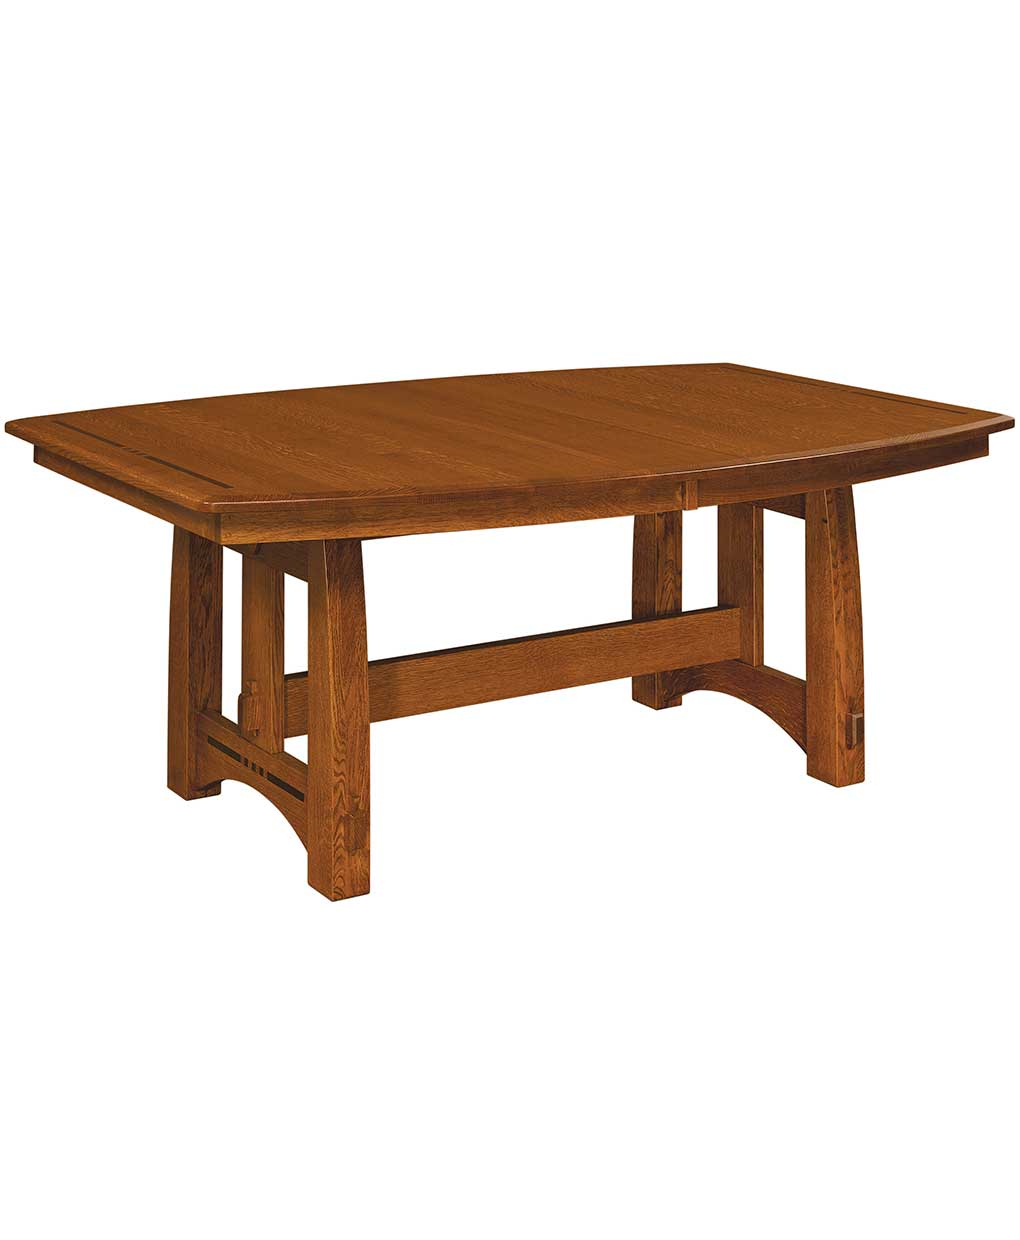 Colebrook Trestle Dining Table – Amish Direct Furniture With Regard To Latest Trestle Dining Tables (Photo 4 of 15)